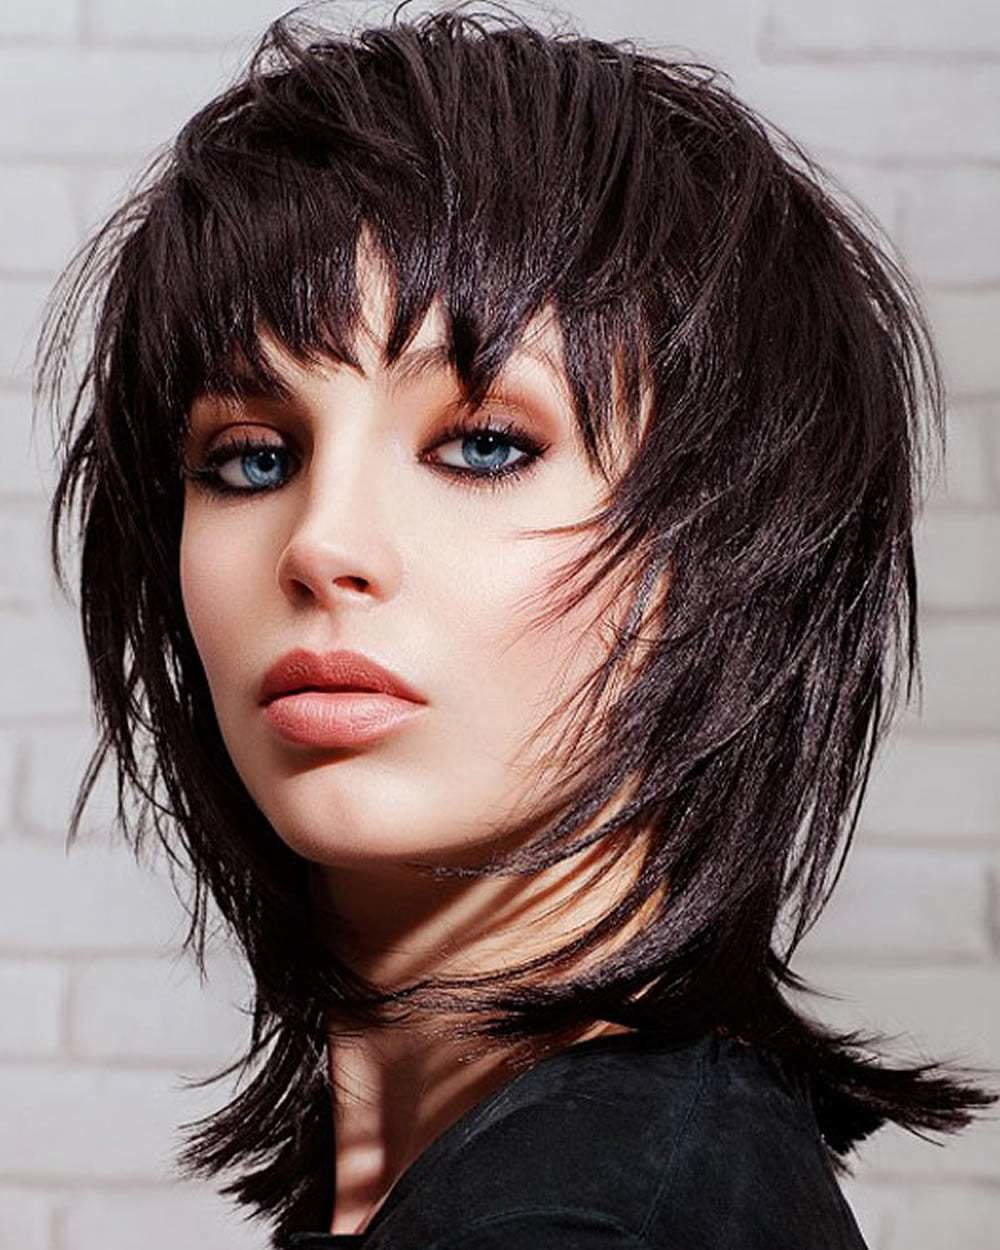 Free Easy Short Hairstyles For Fine Hair – Latest Pixie And Short Haircuts For 2018 2019 11 Wallpaper